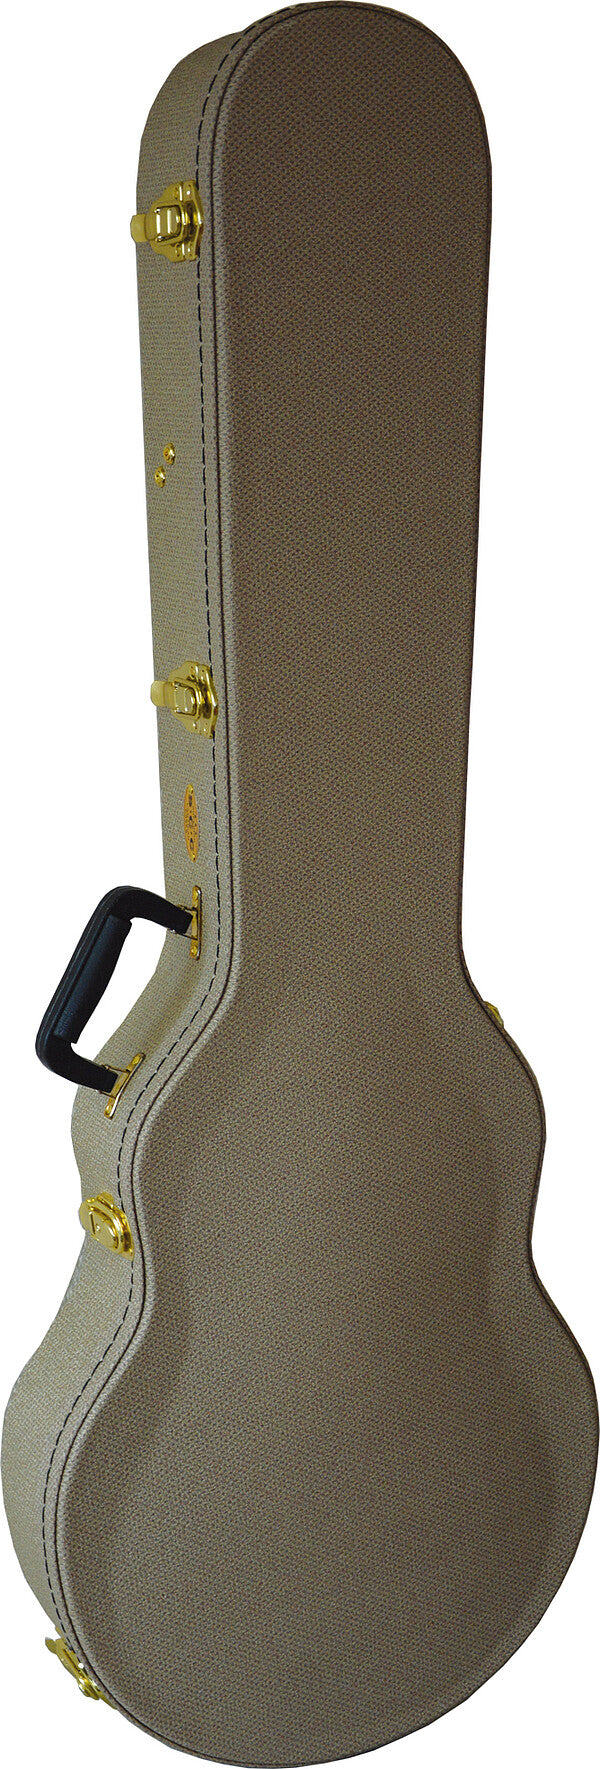 SCC 650106 Les Paul Arched Taupe Tweed Gitarrenkoffer